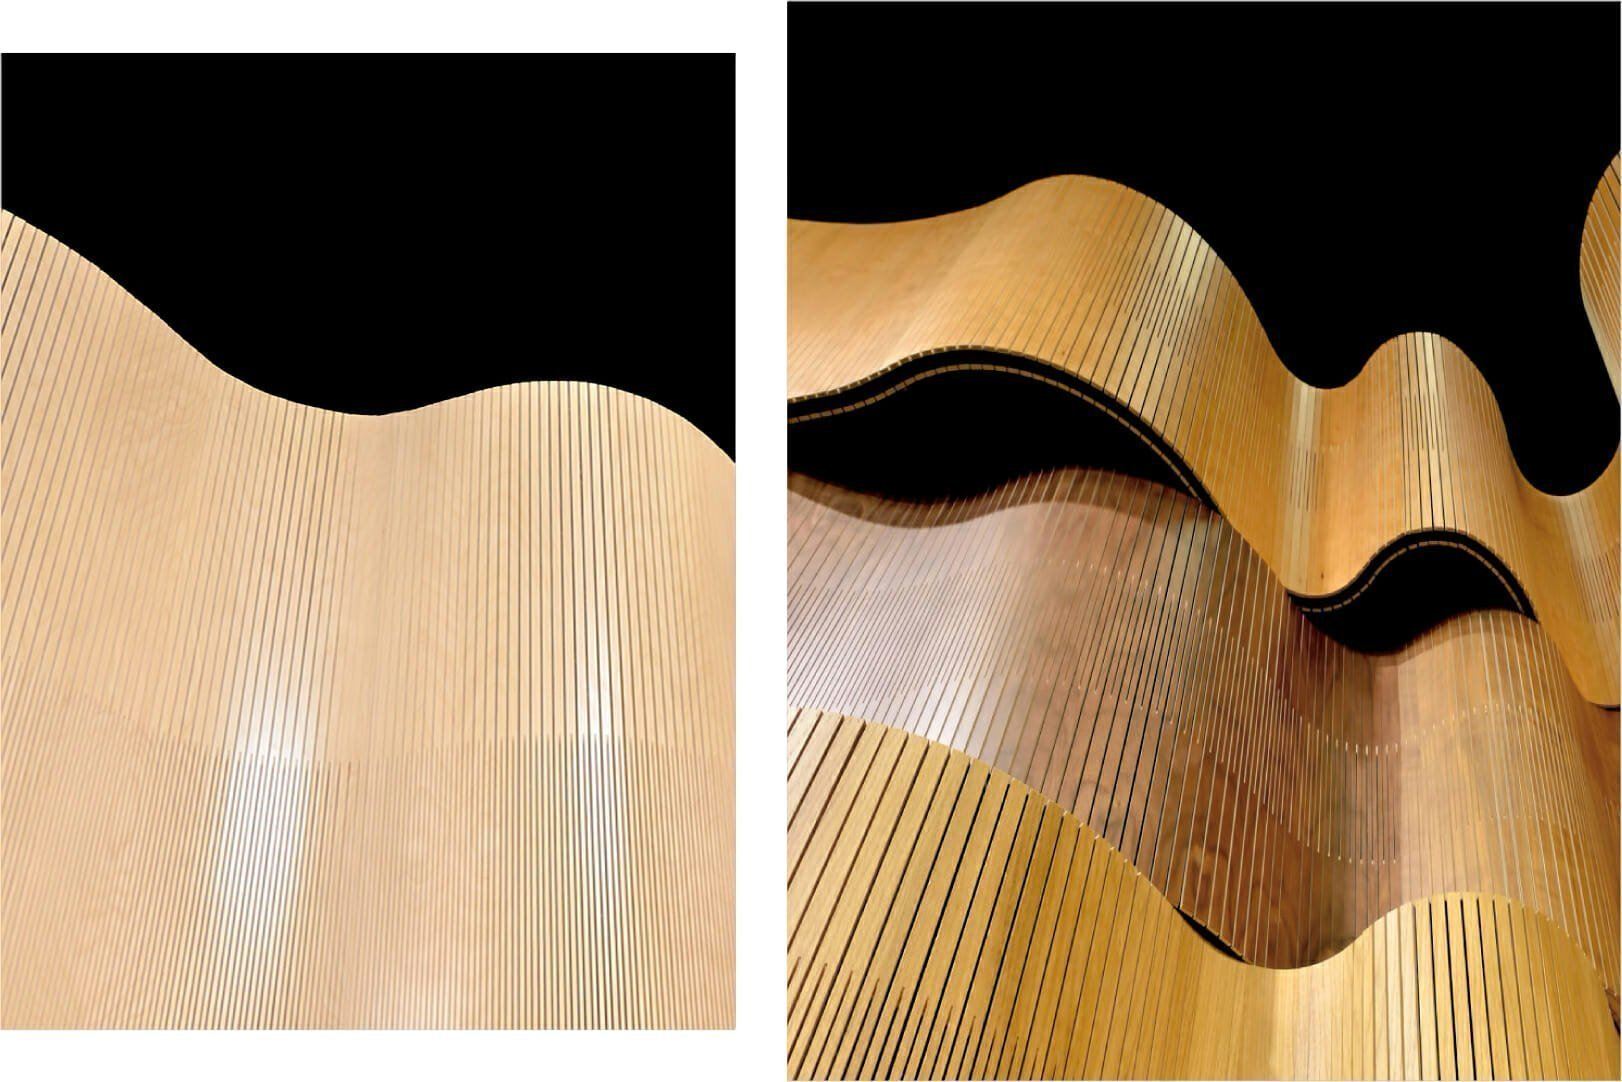 curve wall undulating softly in showroom on left and curve wall undulating like wave in showroom on left